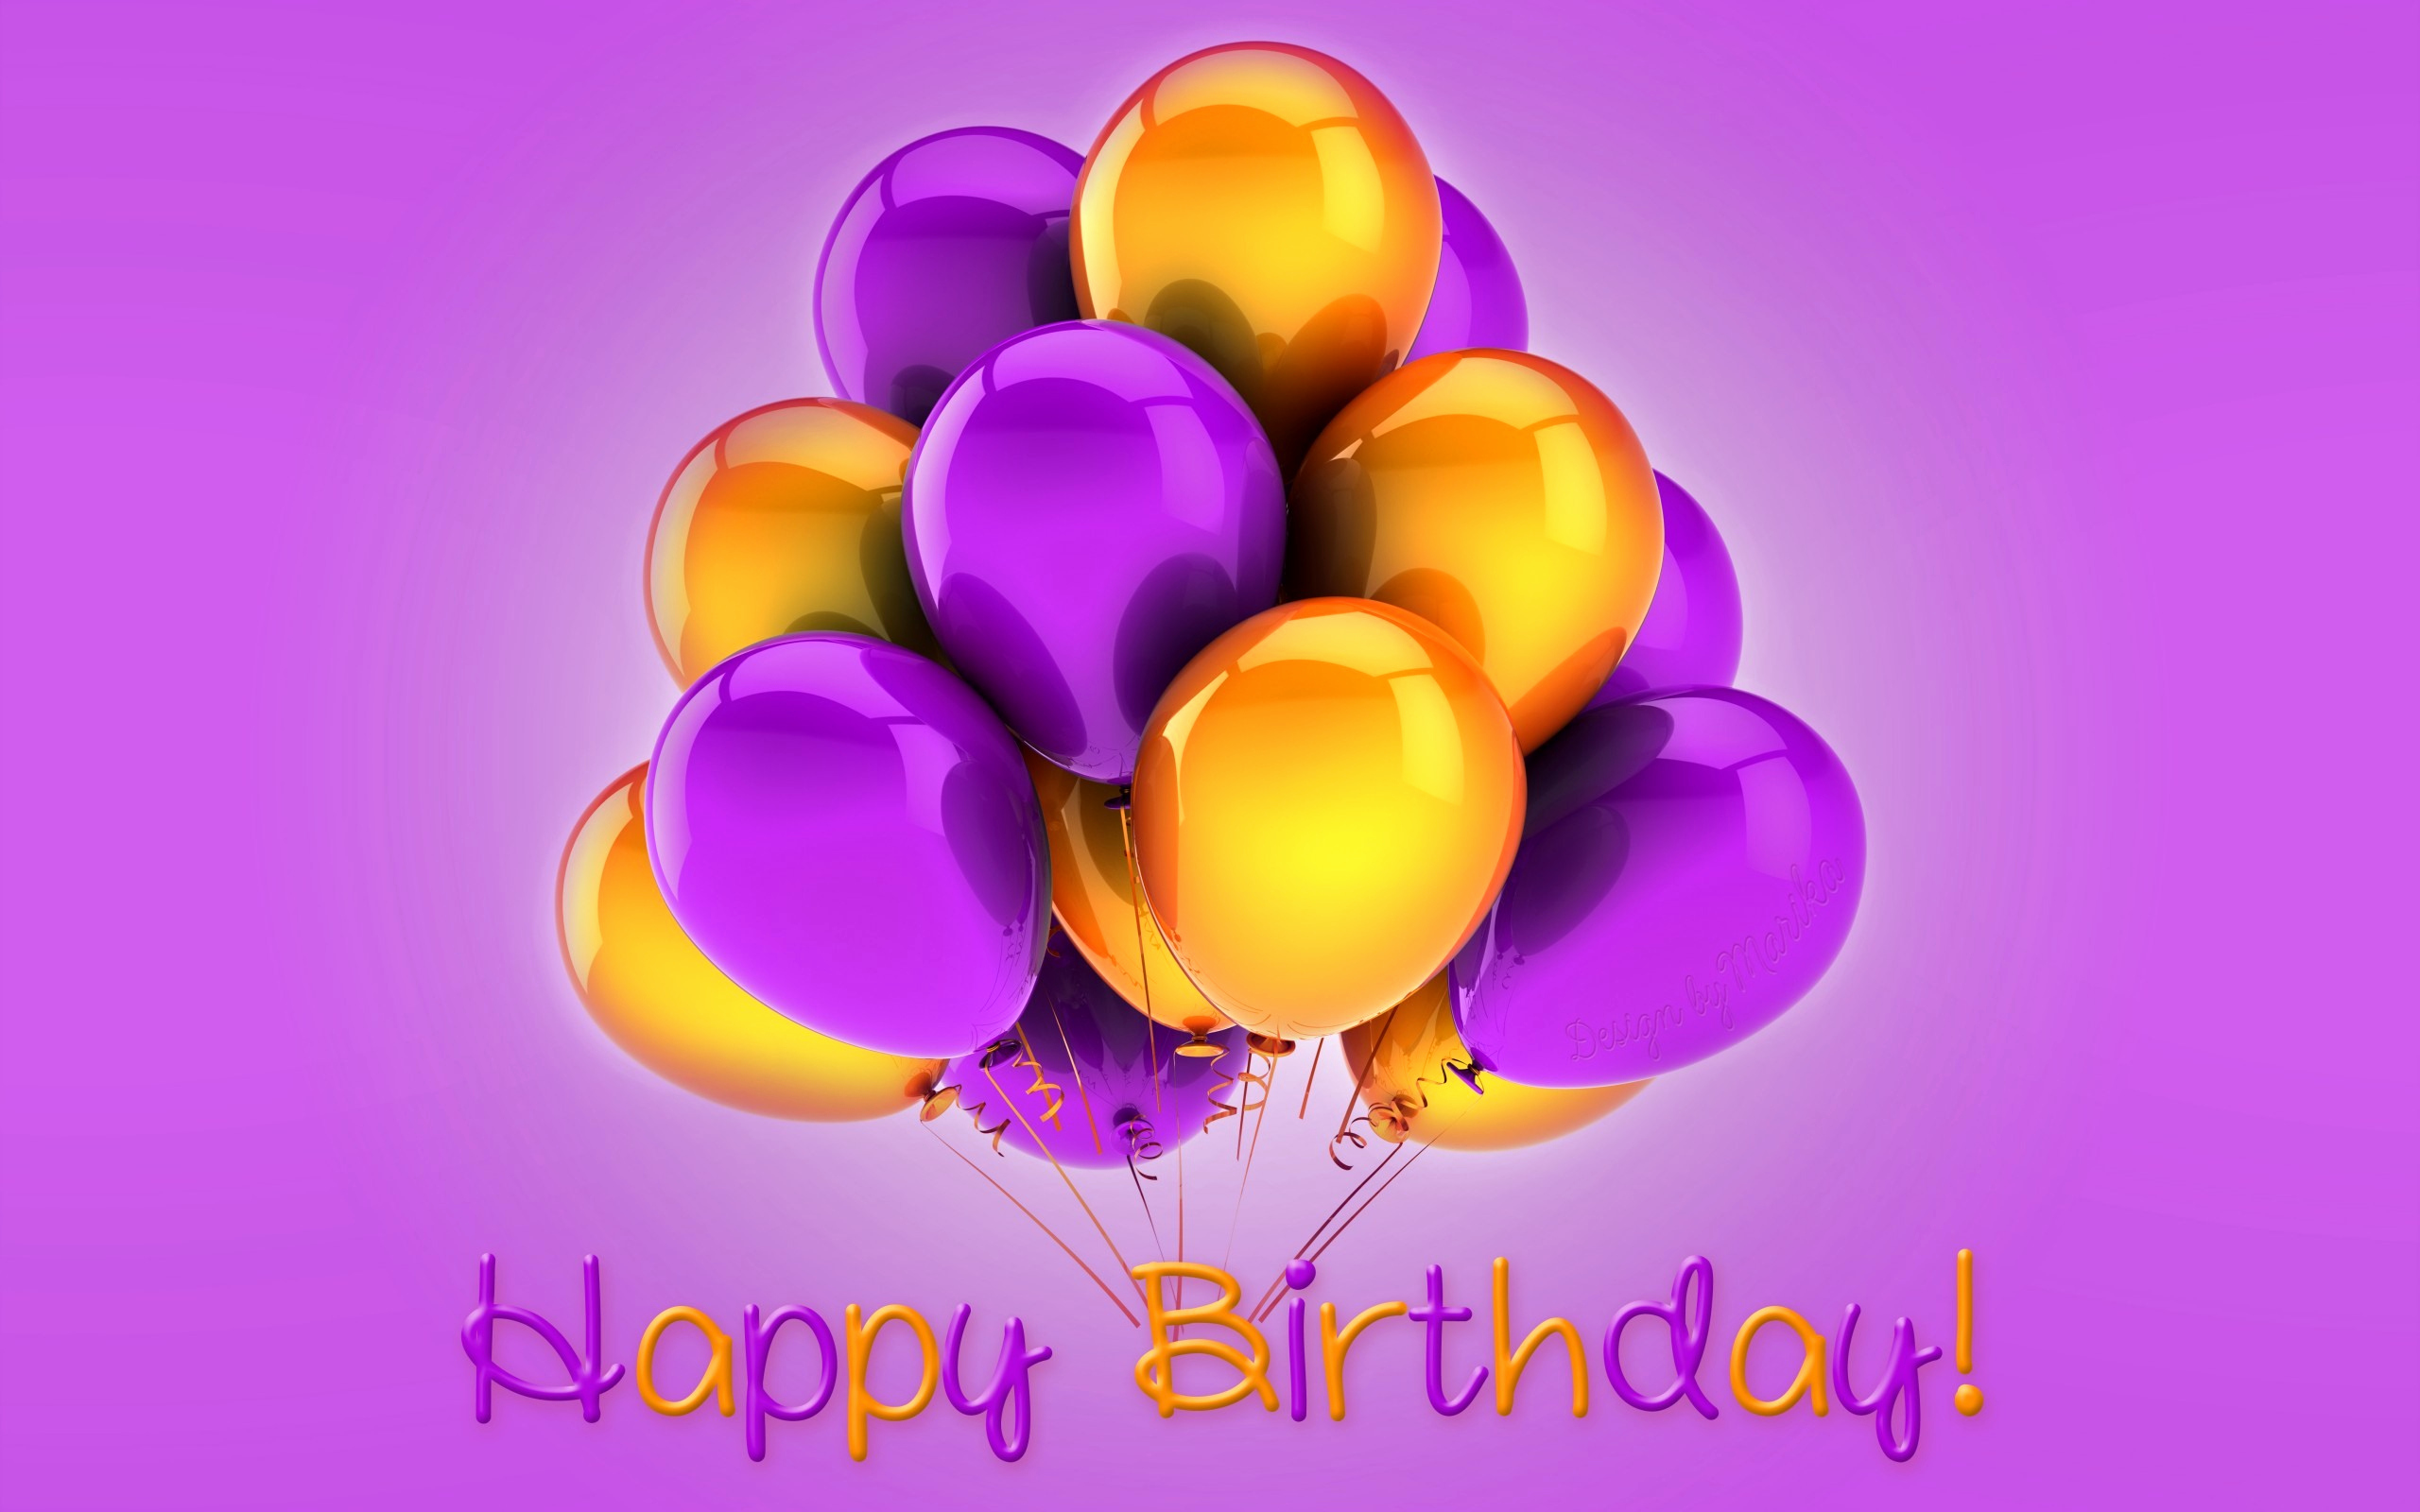 Happy Bday Wallpapers Free Fresh Happy Birthday Wallpapers